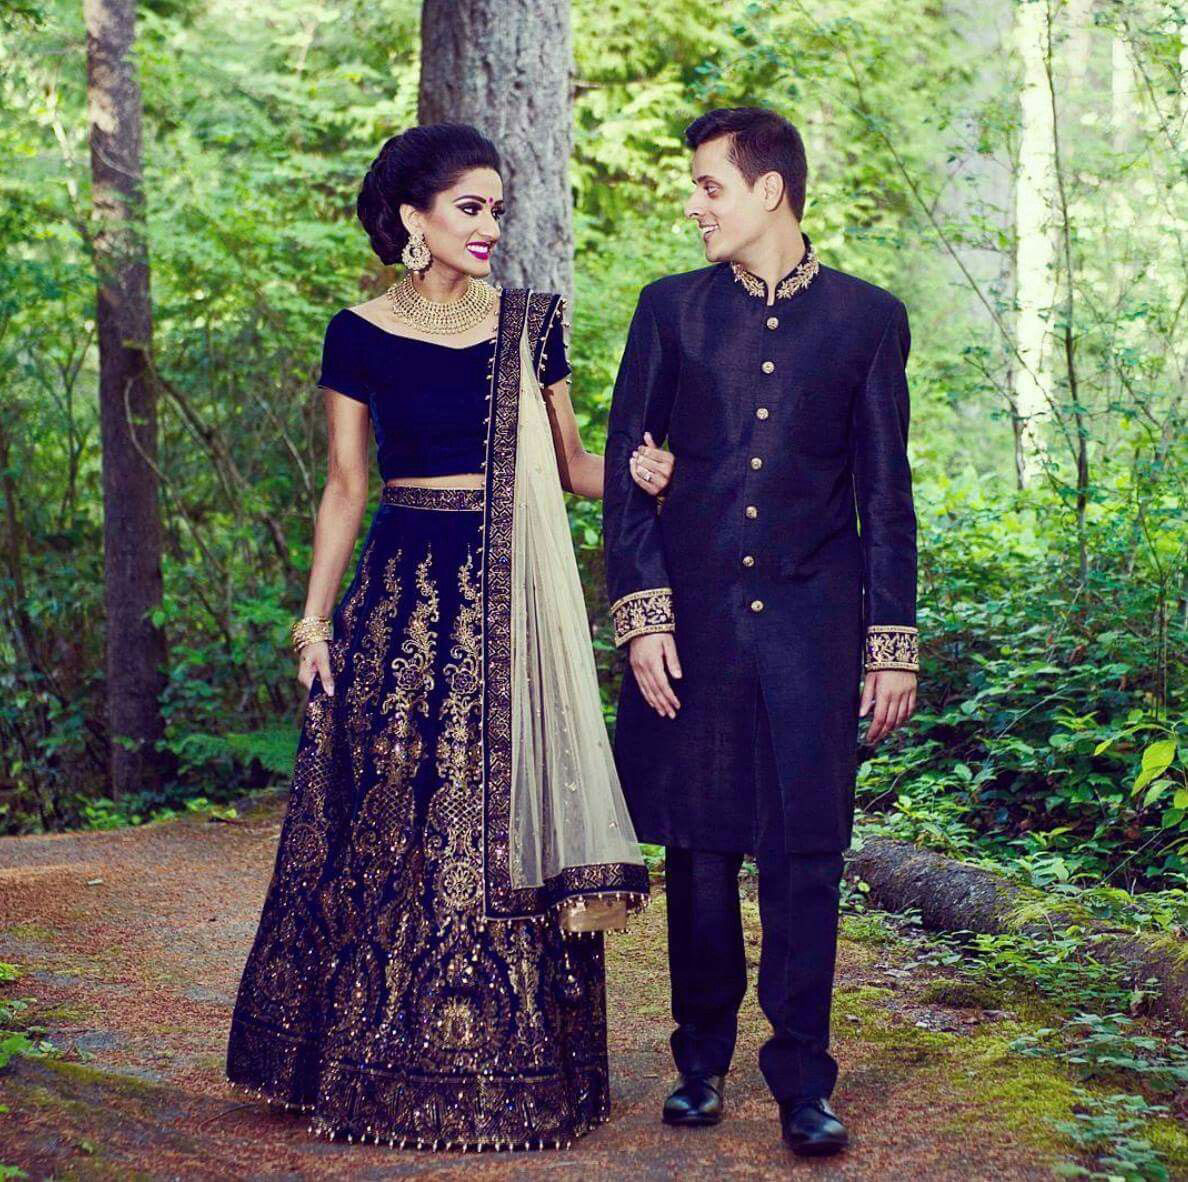 Cute Couple Images photo for download